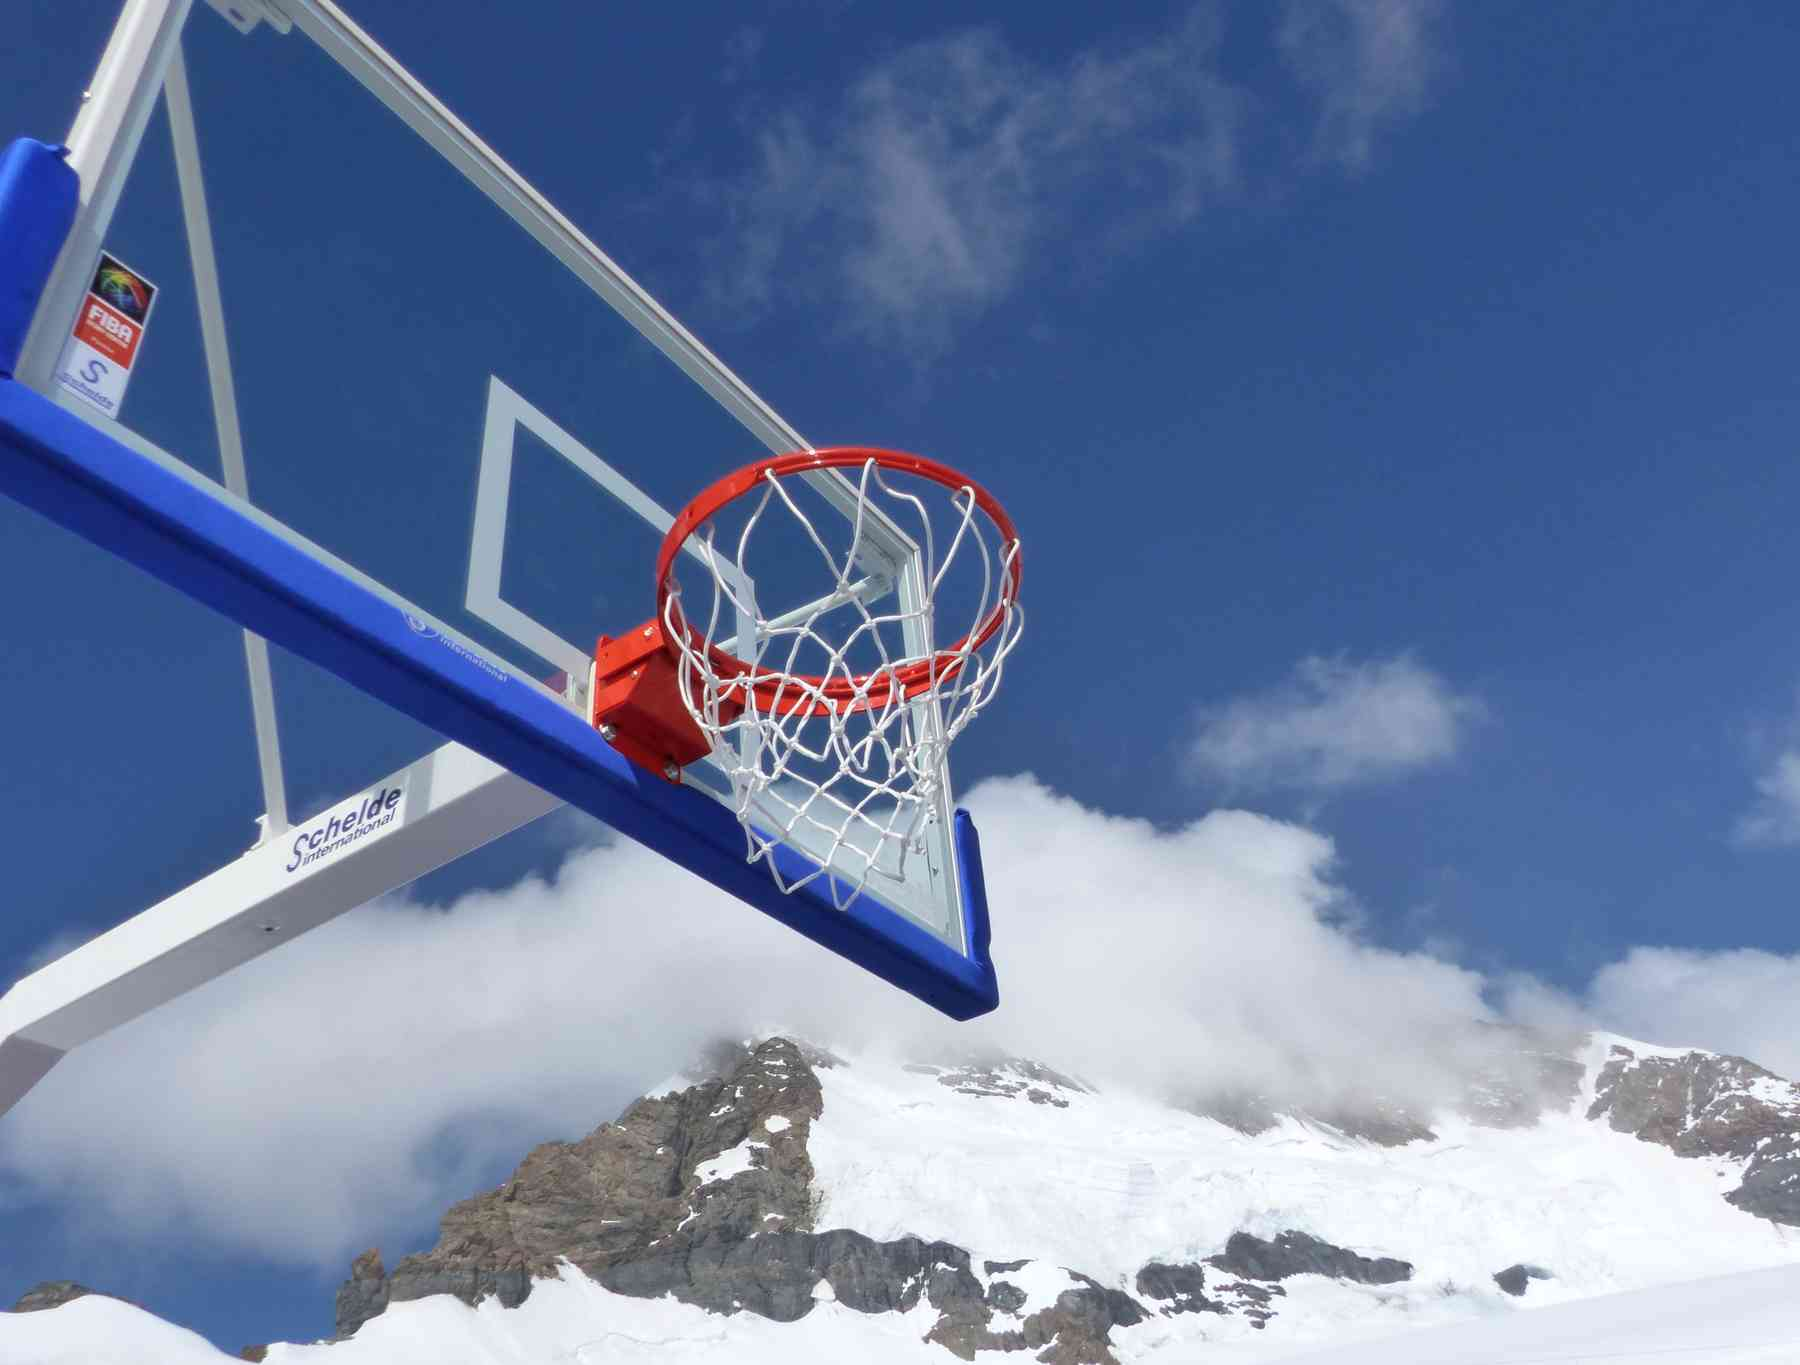 Basketball at Jungfrau